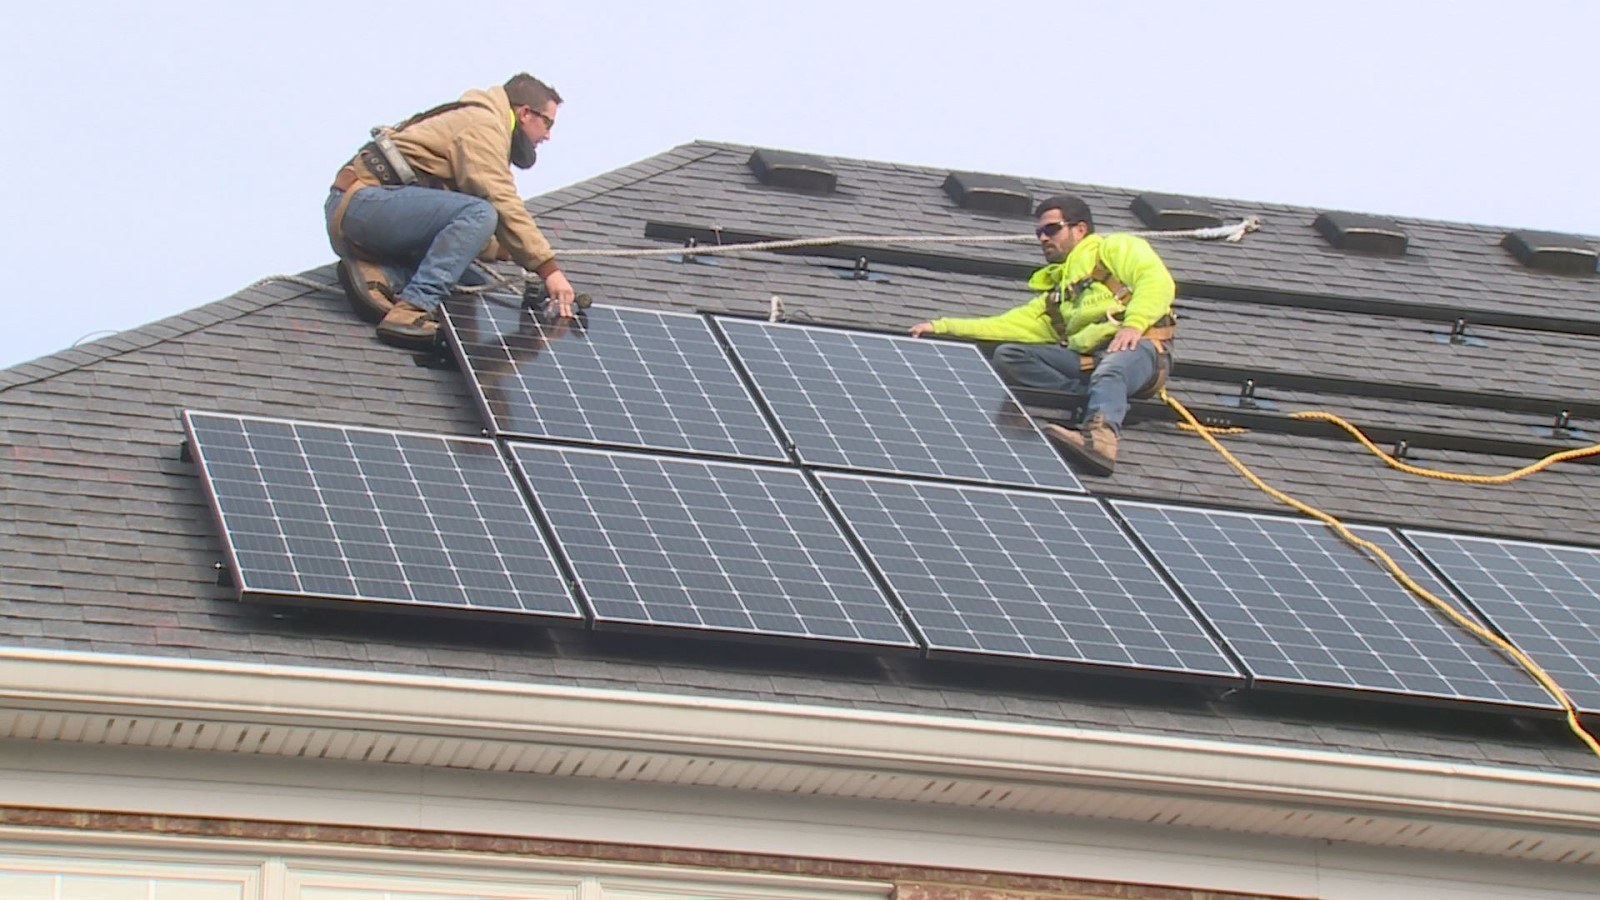 two tradesmen install solar panels on a shingled rooftop